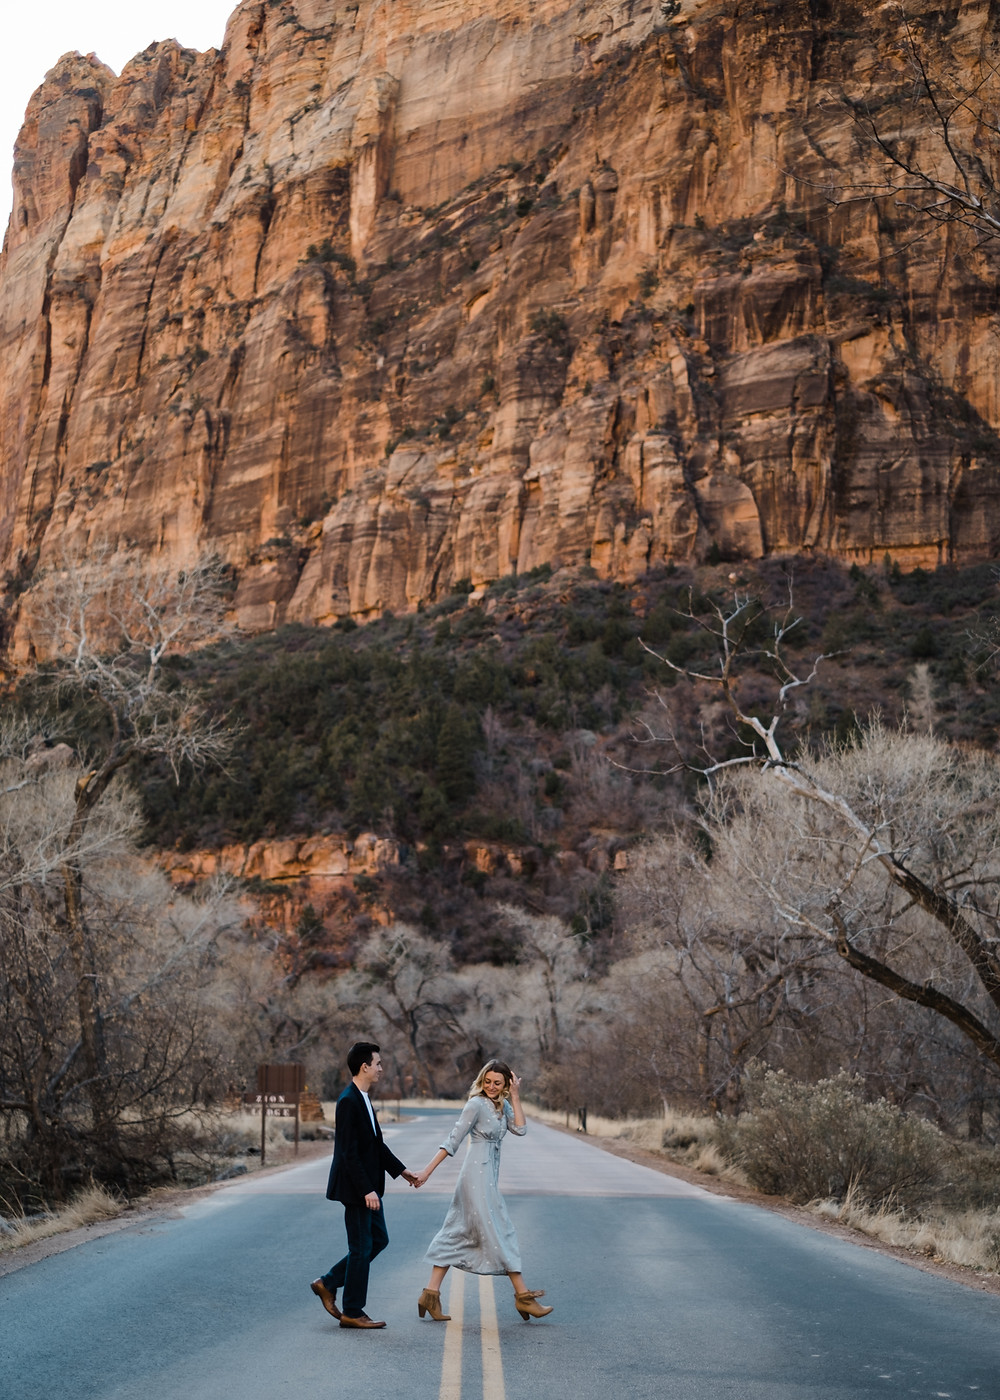 Newely engaged couple take beautiful engagement pictures in zion national park with bride wearing beautiful blue dress.